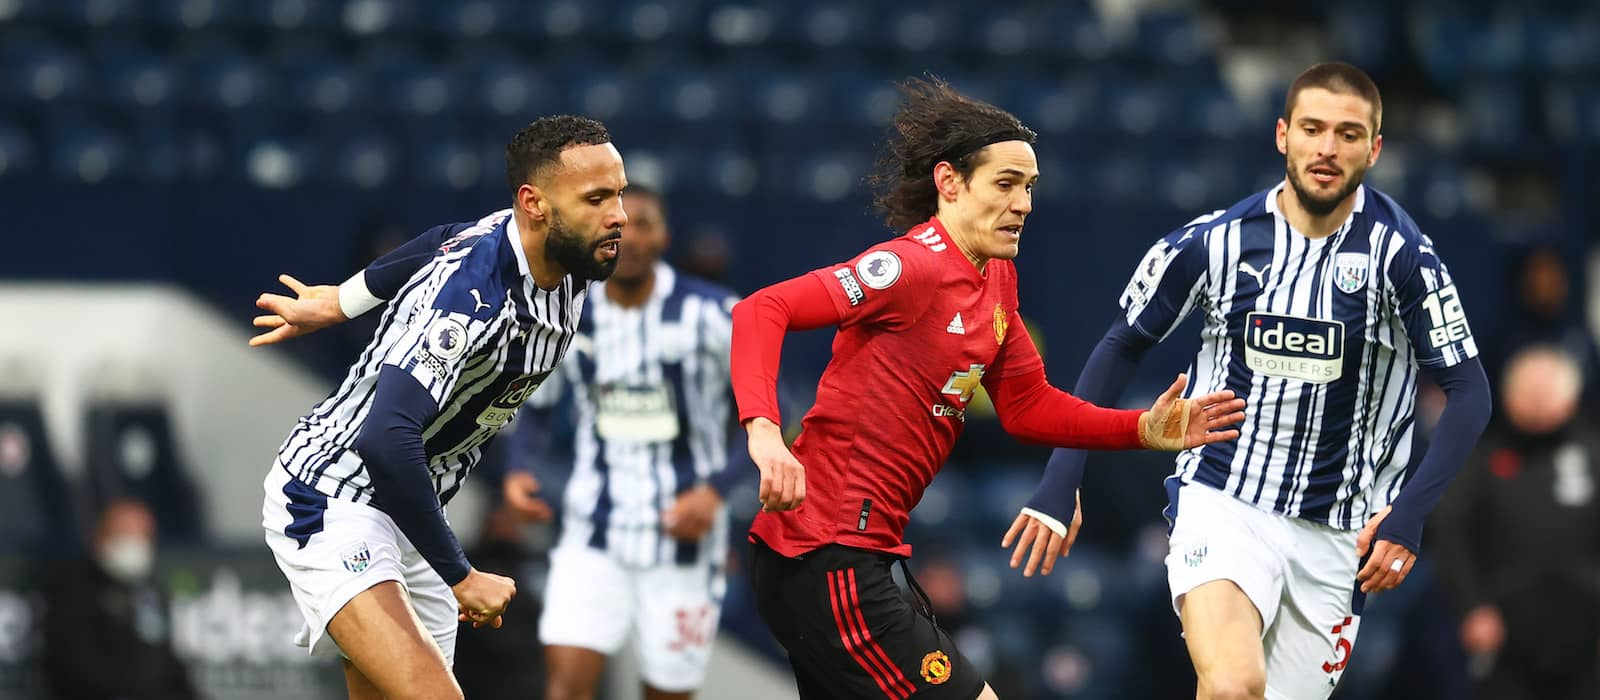 Edinson Cavani insists he's happy to help Manchester United youngsters